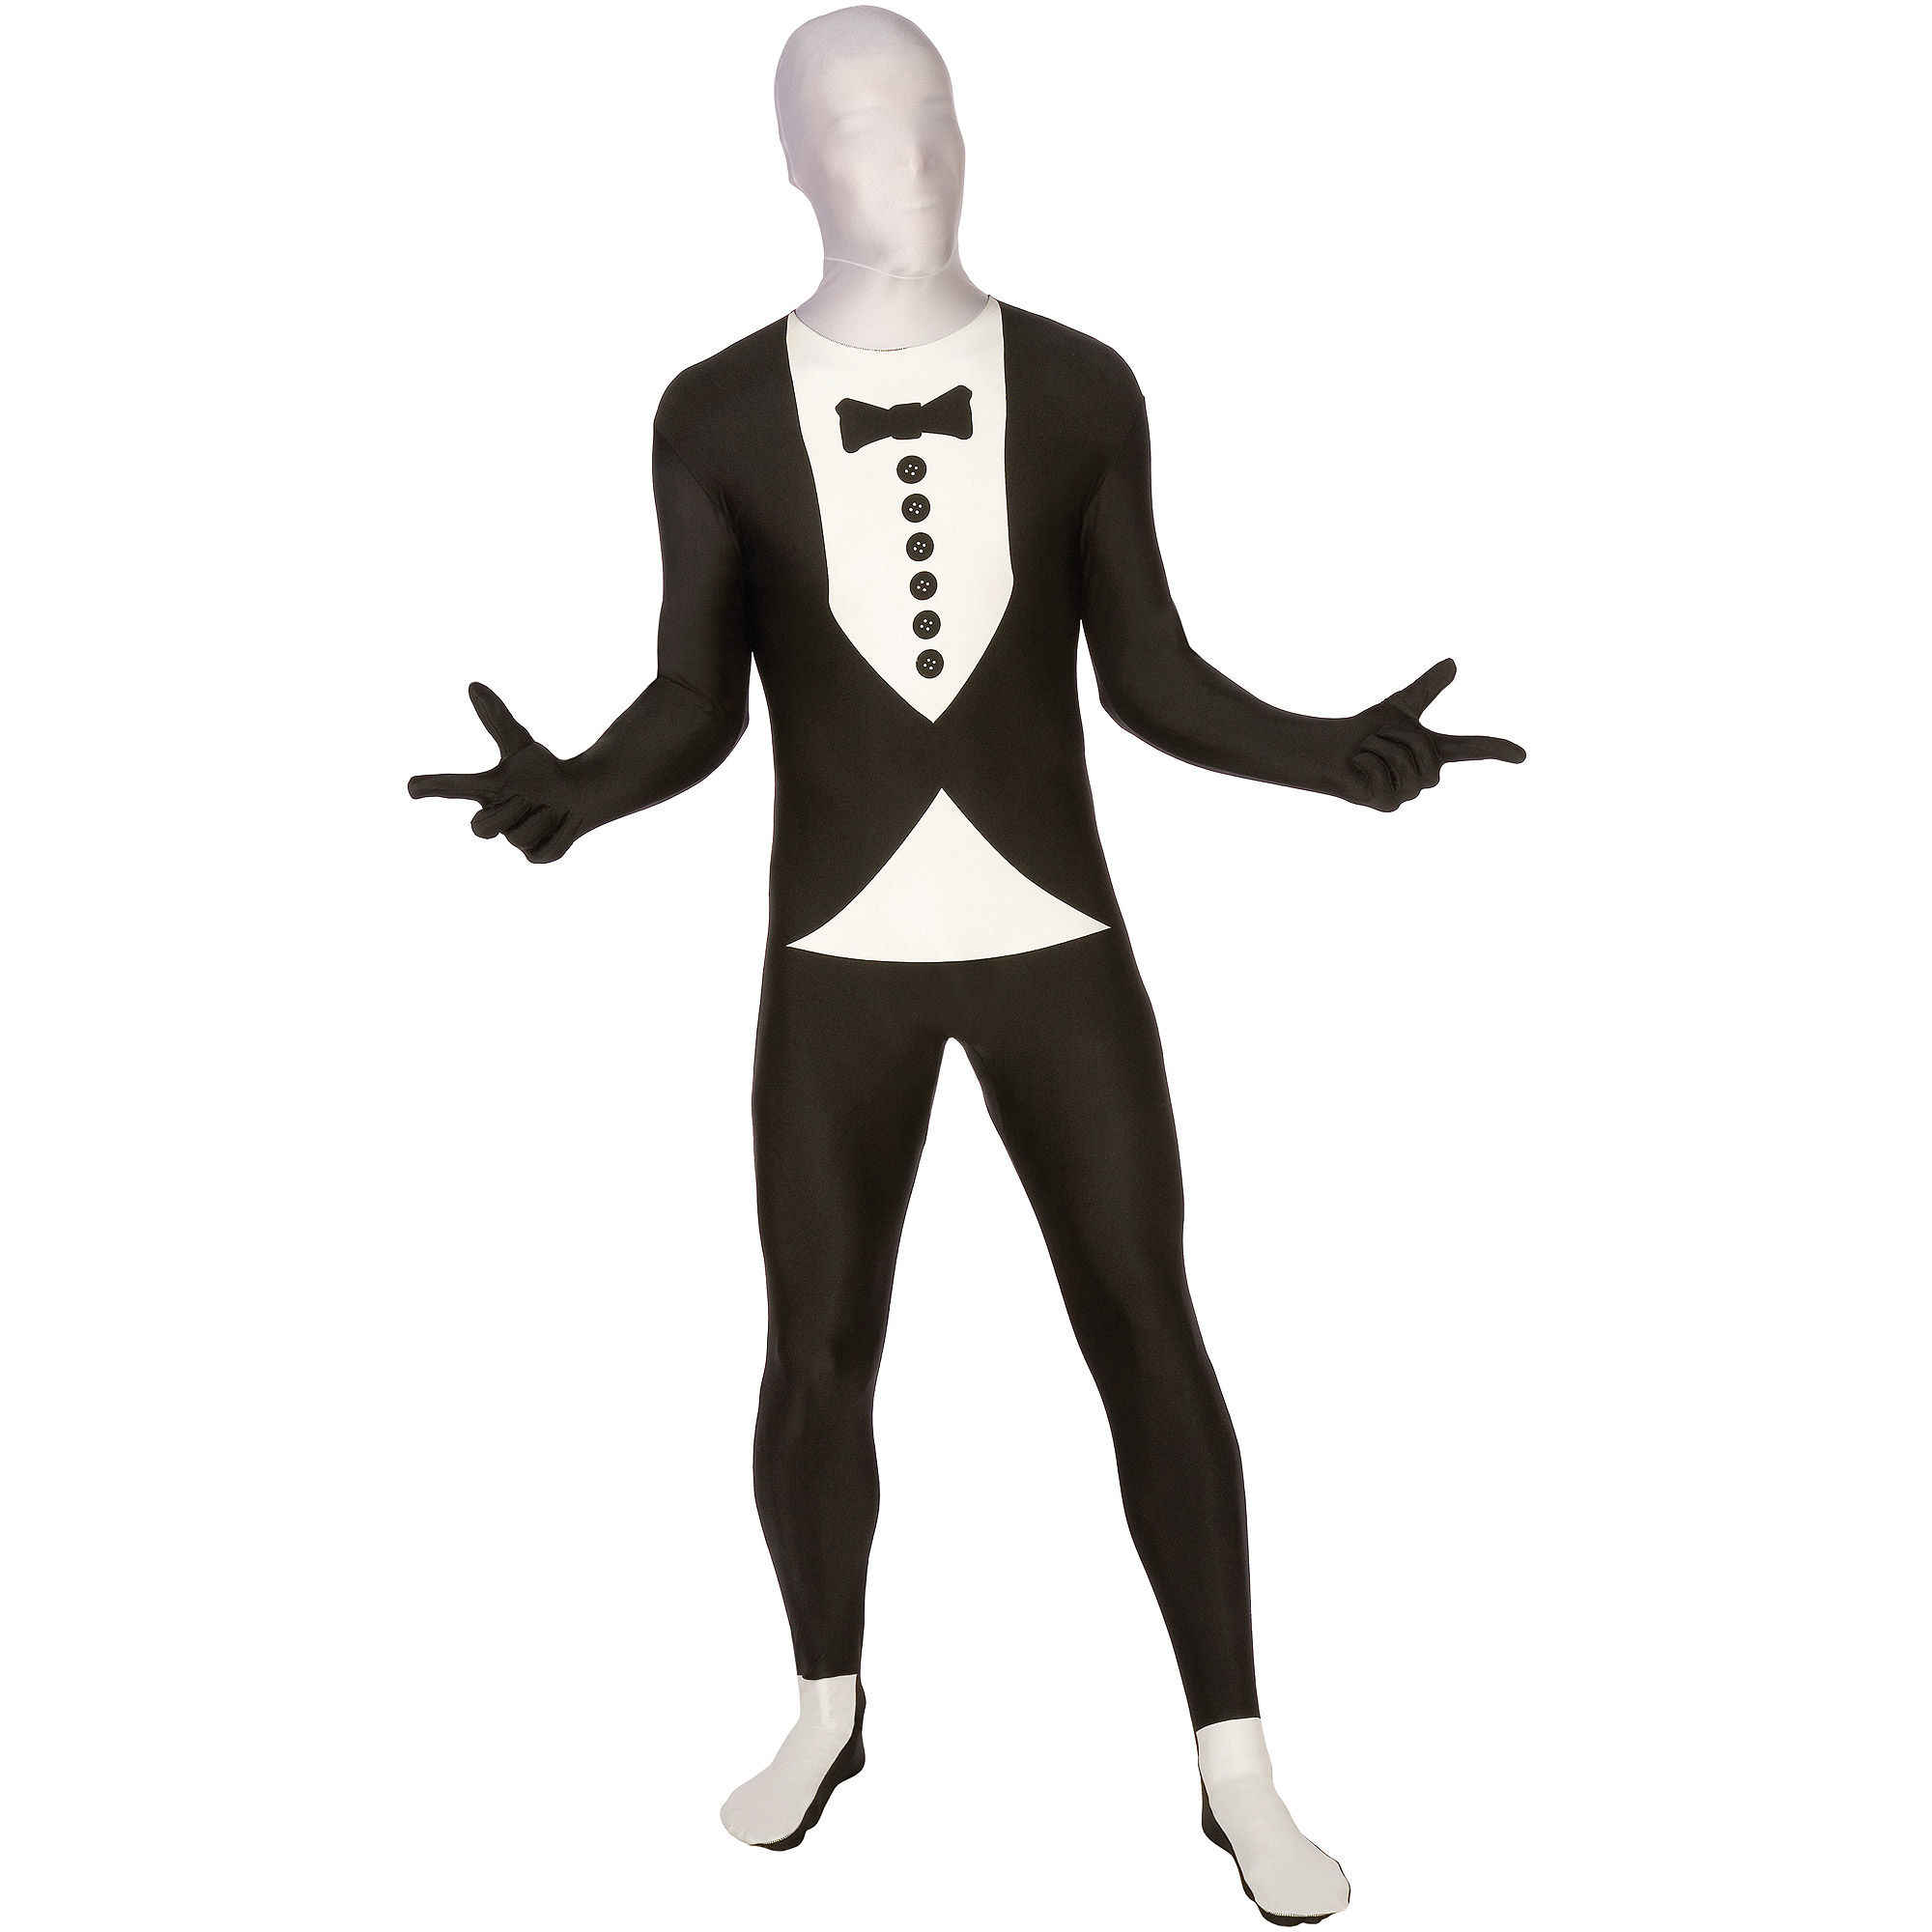 Men Tuxedo Bodysuit Medium Halloween Dress Up / Role Play Costume - Walmart.com  sc 1 st  Walmart & Men Tuxedo Bodysuit Medium Halloween Dress Up / Role Play Costume ...